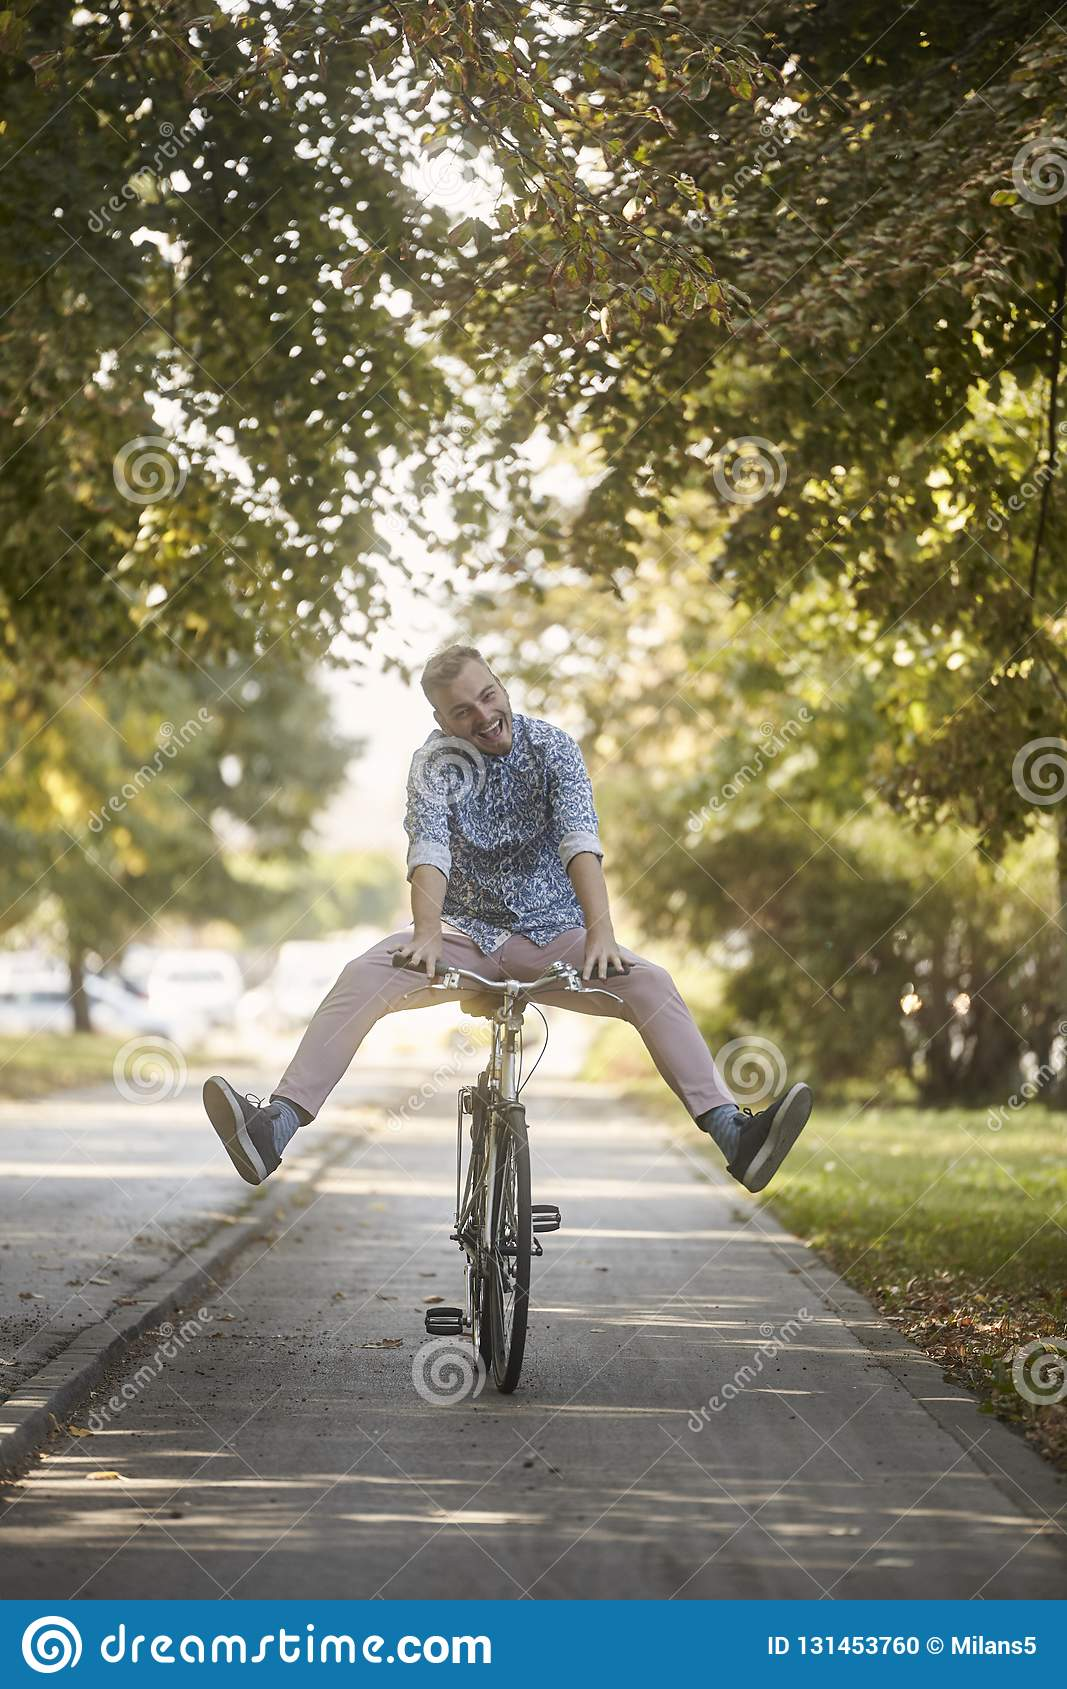 Smiling, funny, ridiculous, young man, 20-29 years old, cycling on road track. legs spread